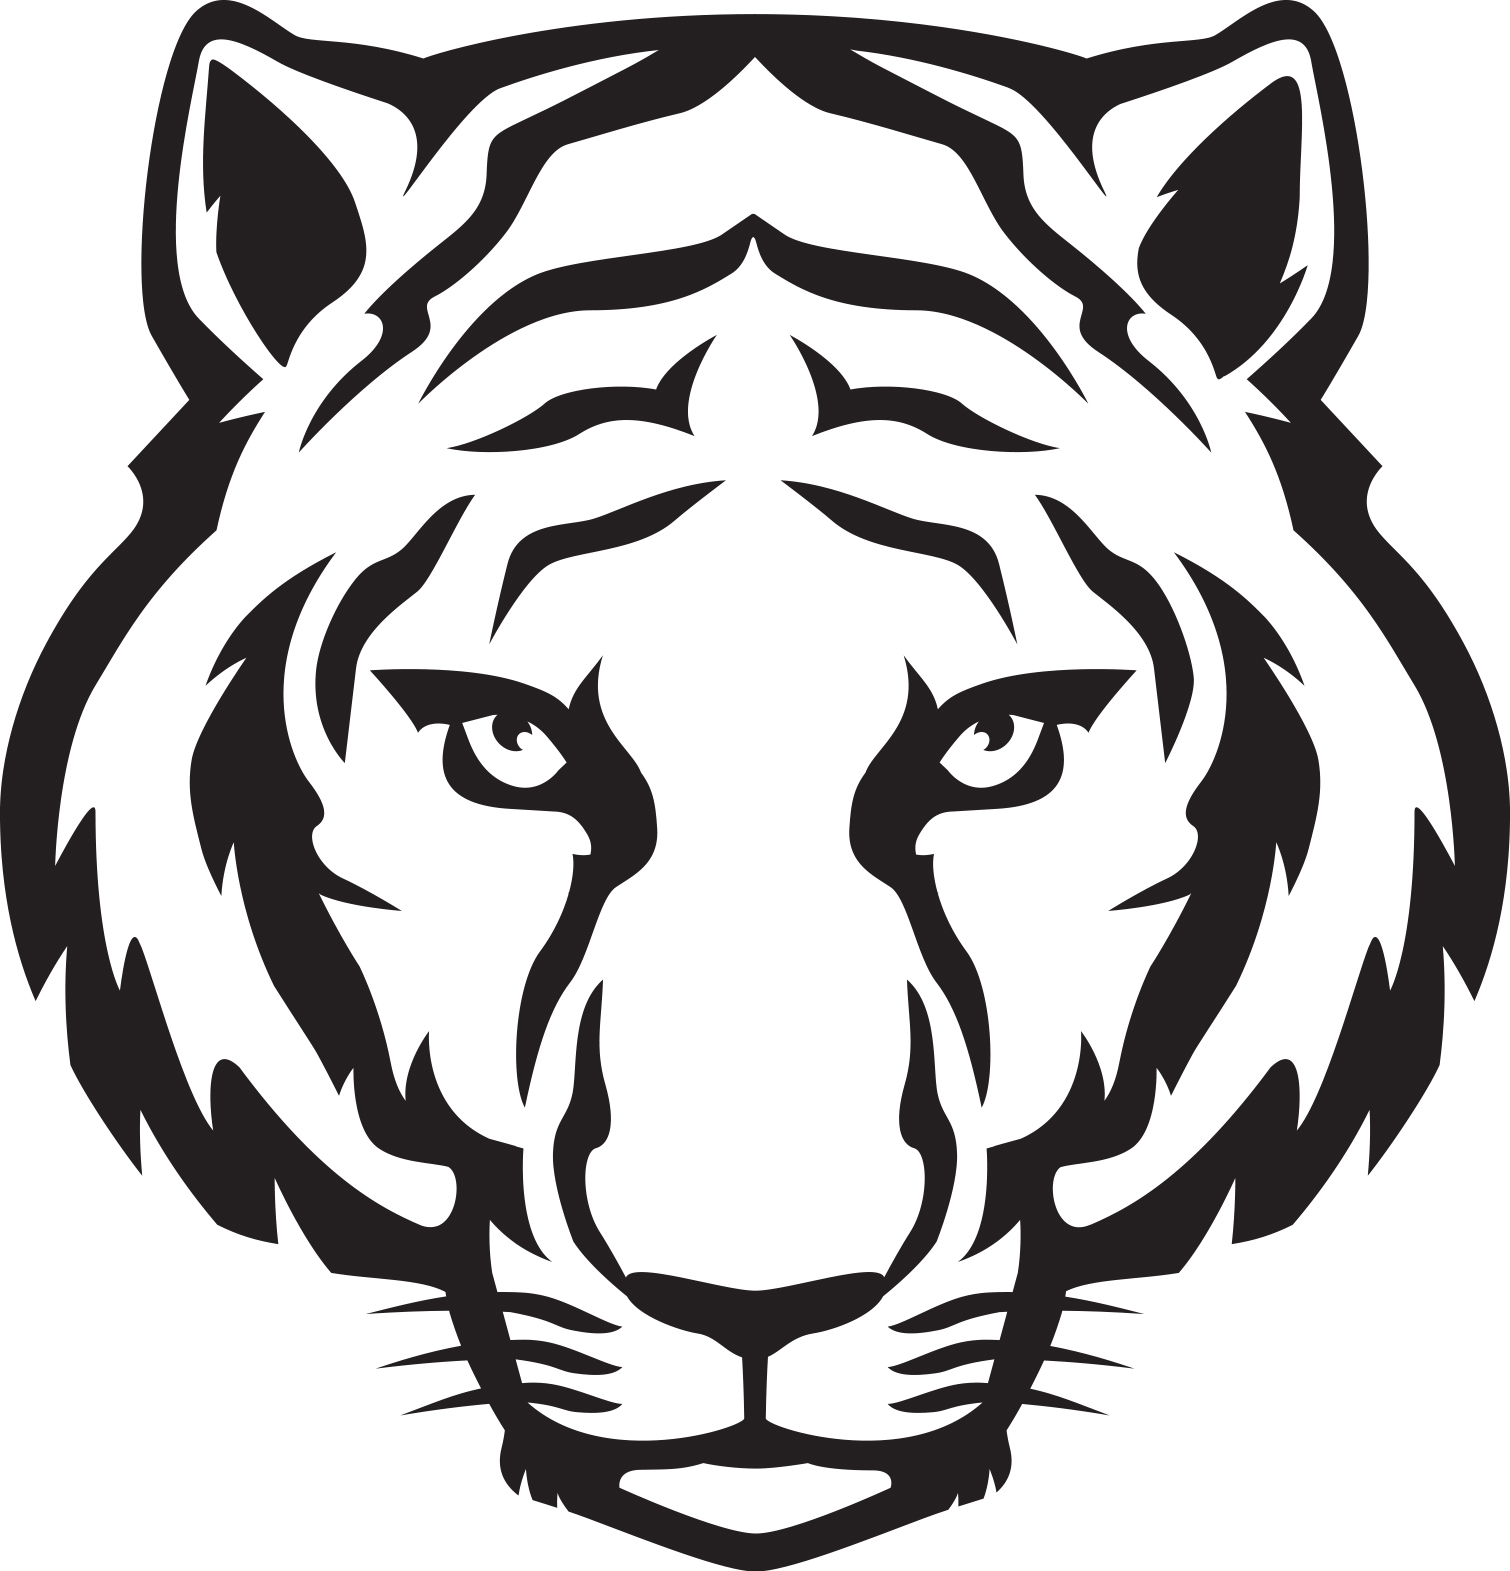 Tiger Face Clip Art tiger%20face%20clip%20art%20black%20and%20white